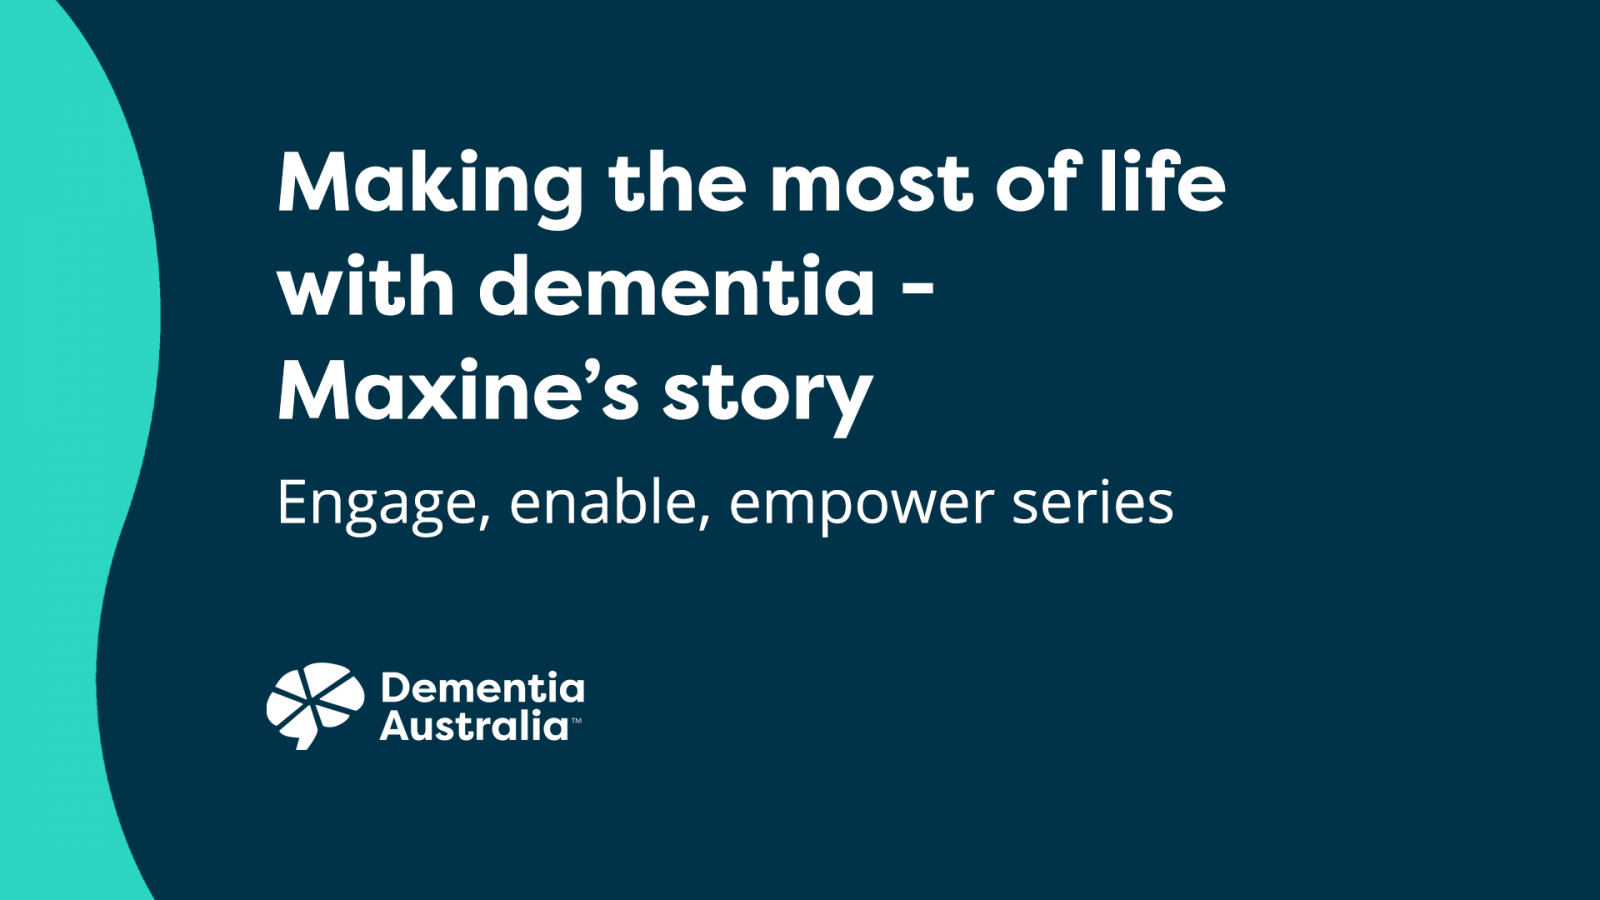 Making the most of life with dementia - Maxine's story - video thumbnail